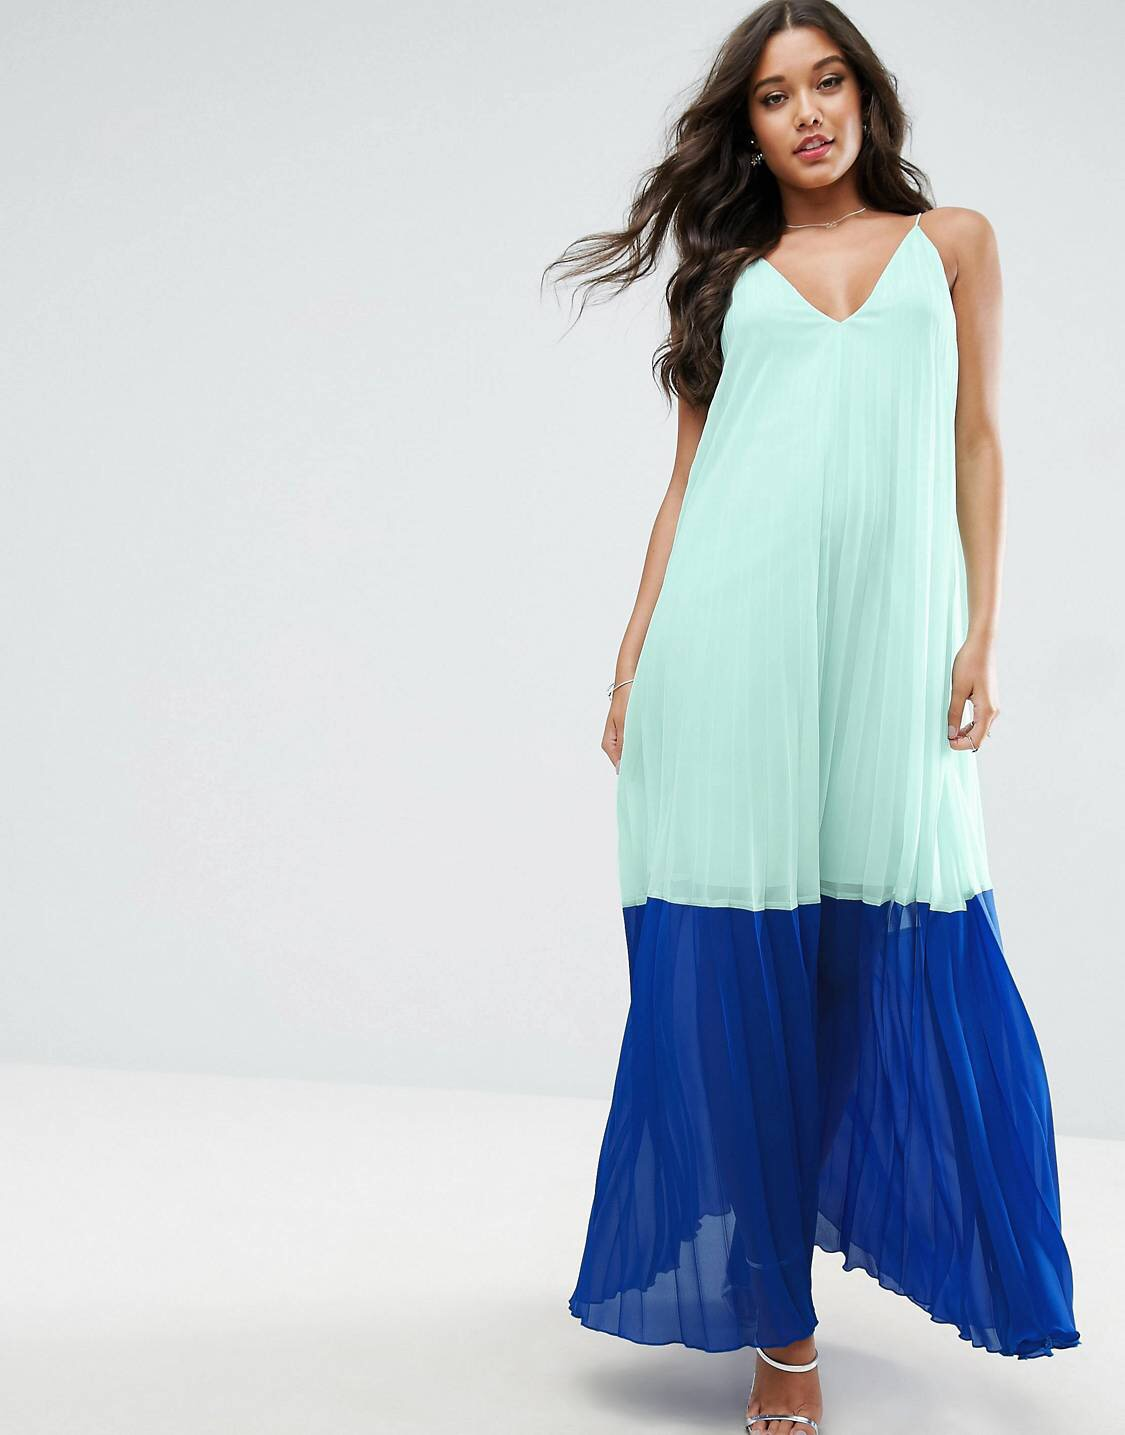 £29 ASOS Colour Block - A lil higher priced and it has to be layered but it's the perfect dress for sisters of all ages.